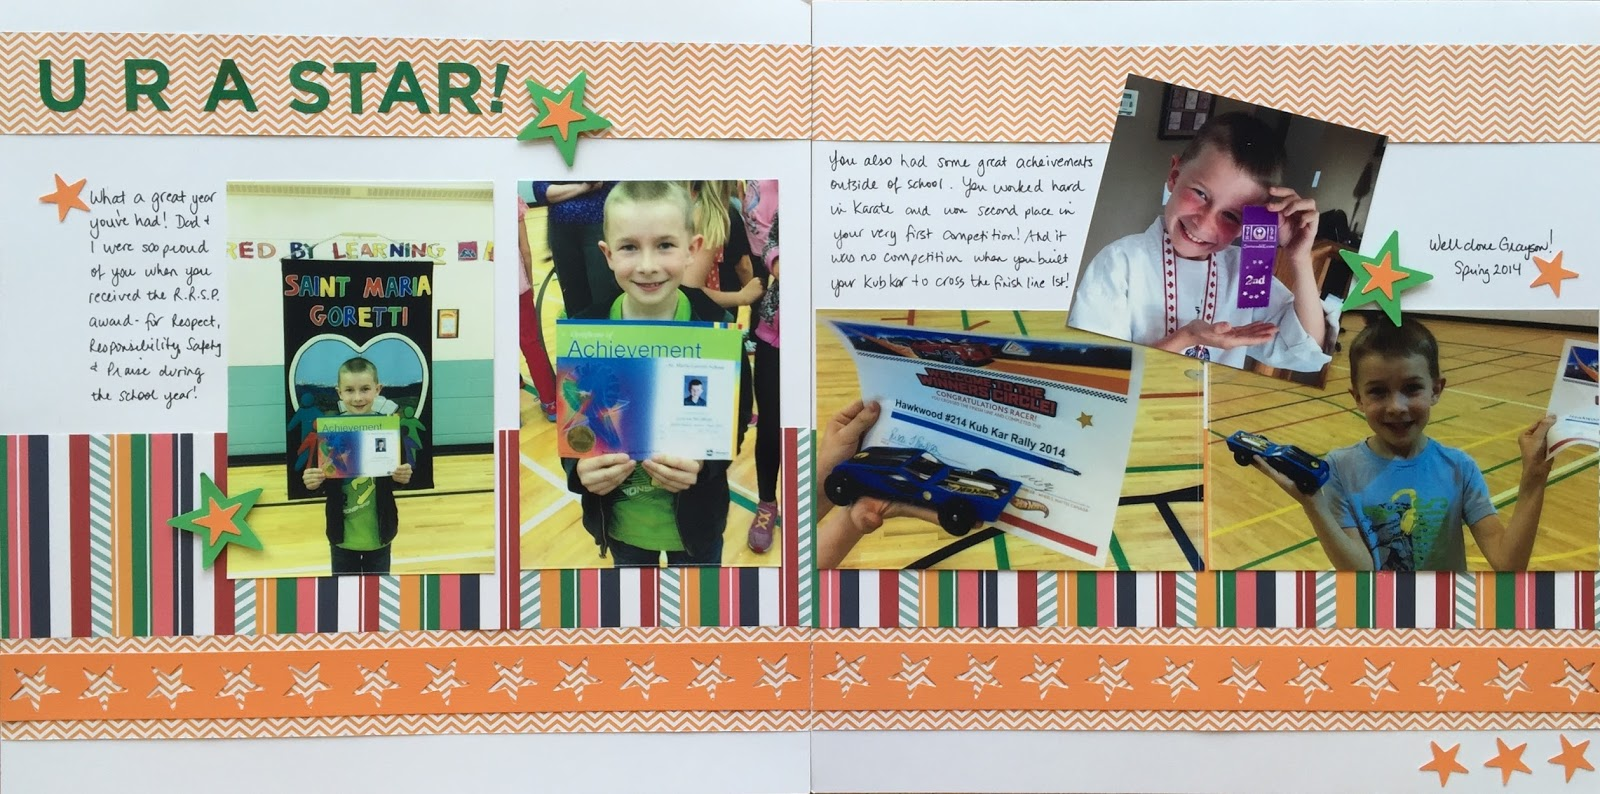 Abc scrapbook ideas list - A Year To Remember Paper Pack Watercolor Green Abc 123 Stickers Star Border Maker Cartridge Border Maker System Tape Runner Adhesive